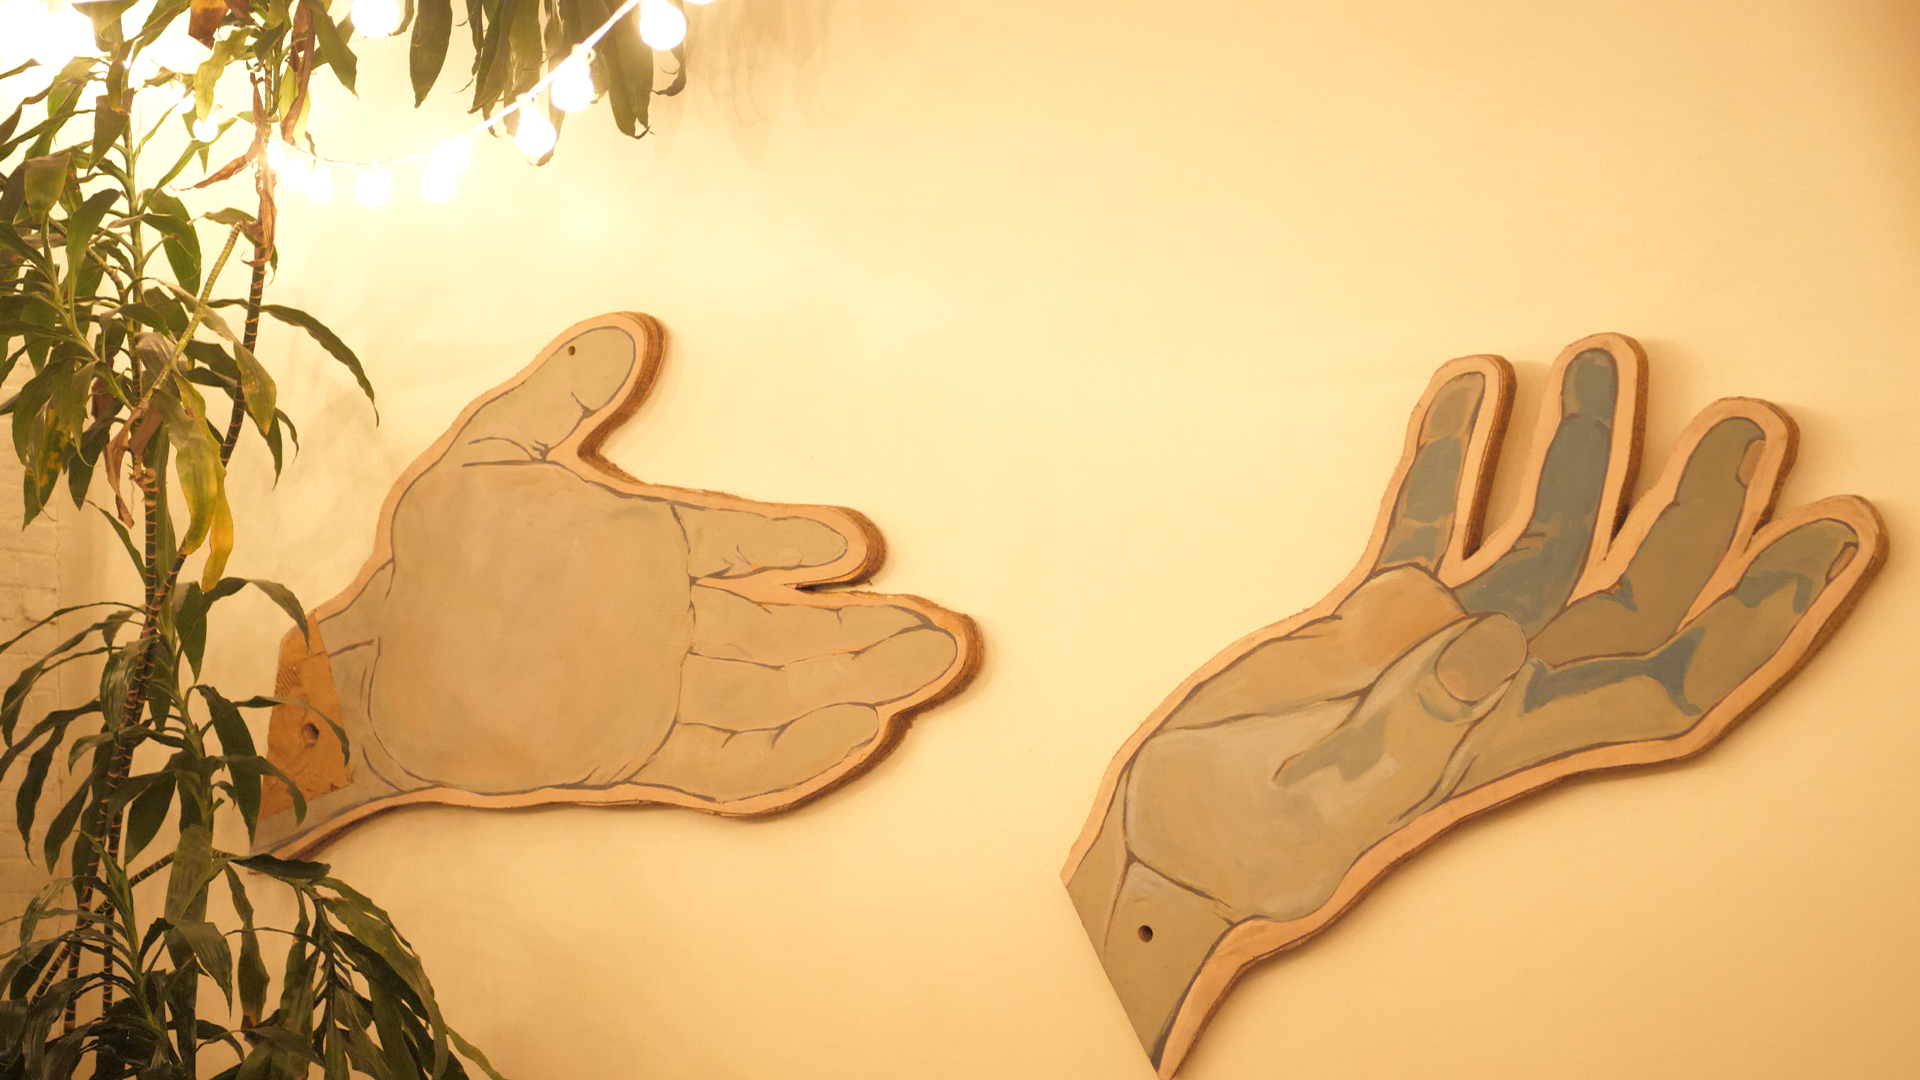 Decorative hands on a wall